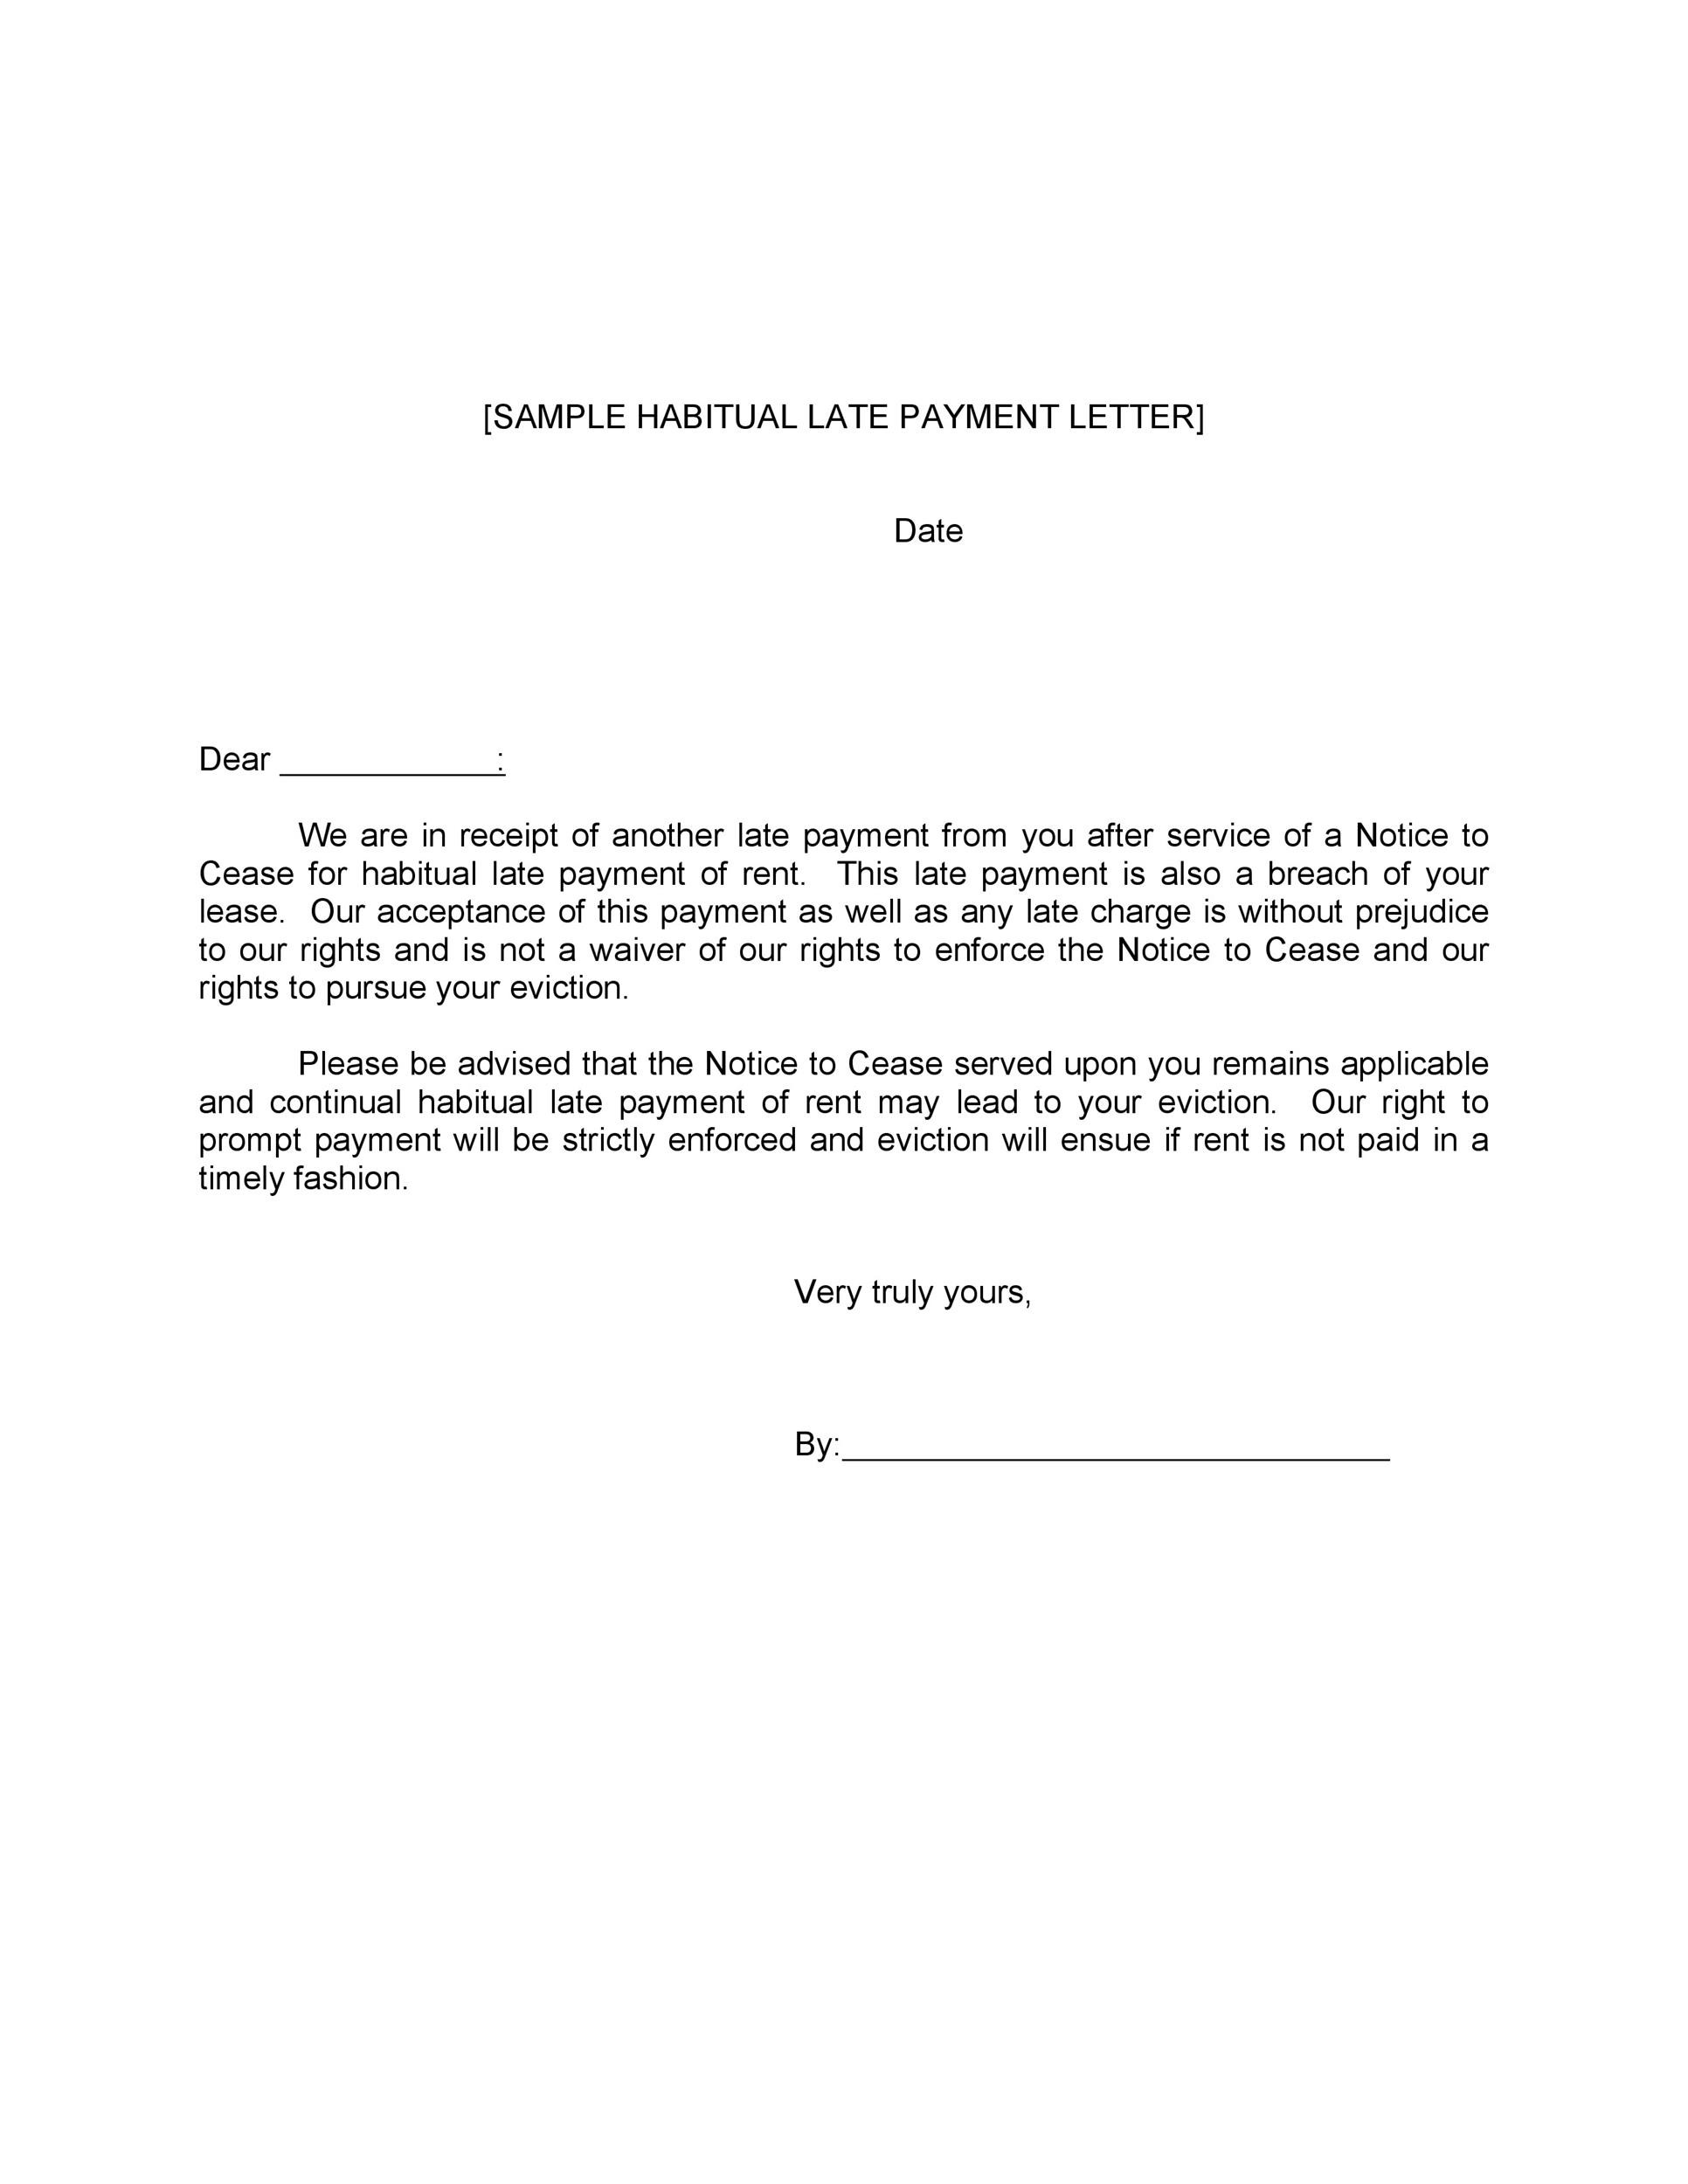 Tenant Late Payment Letter from templatelab.com